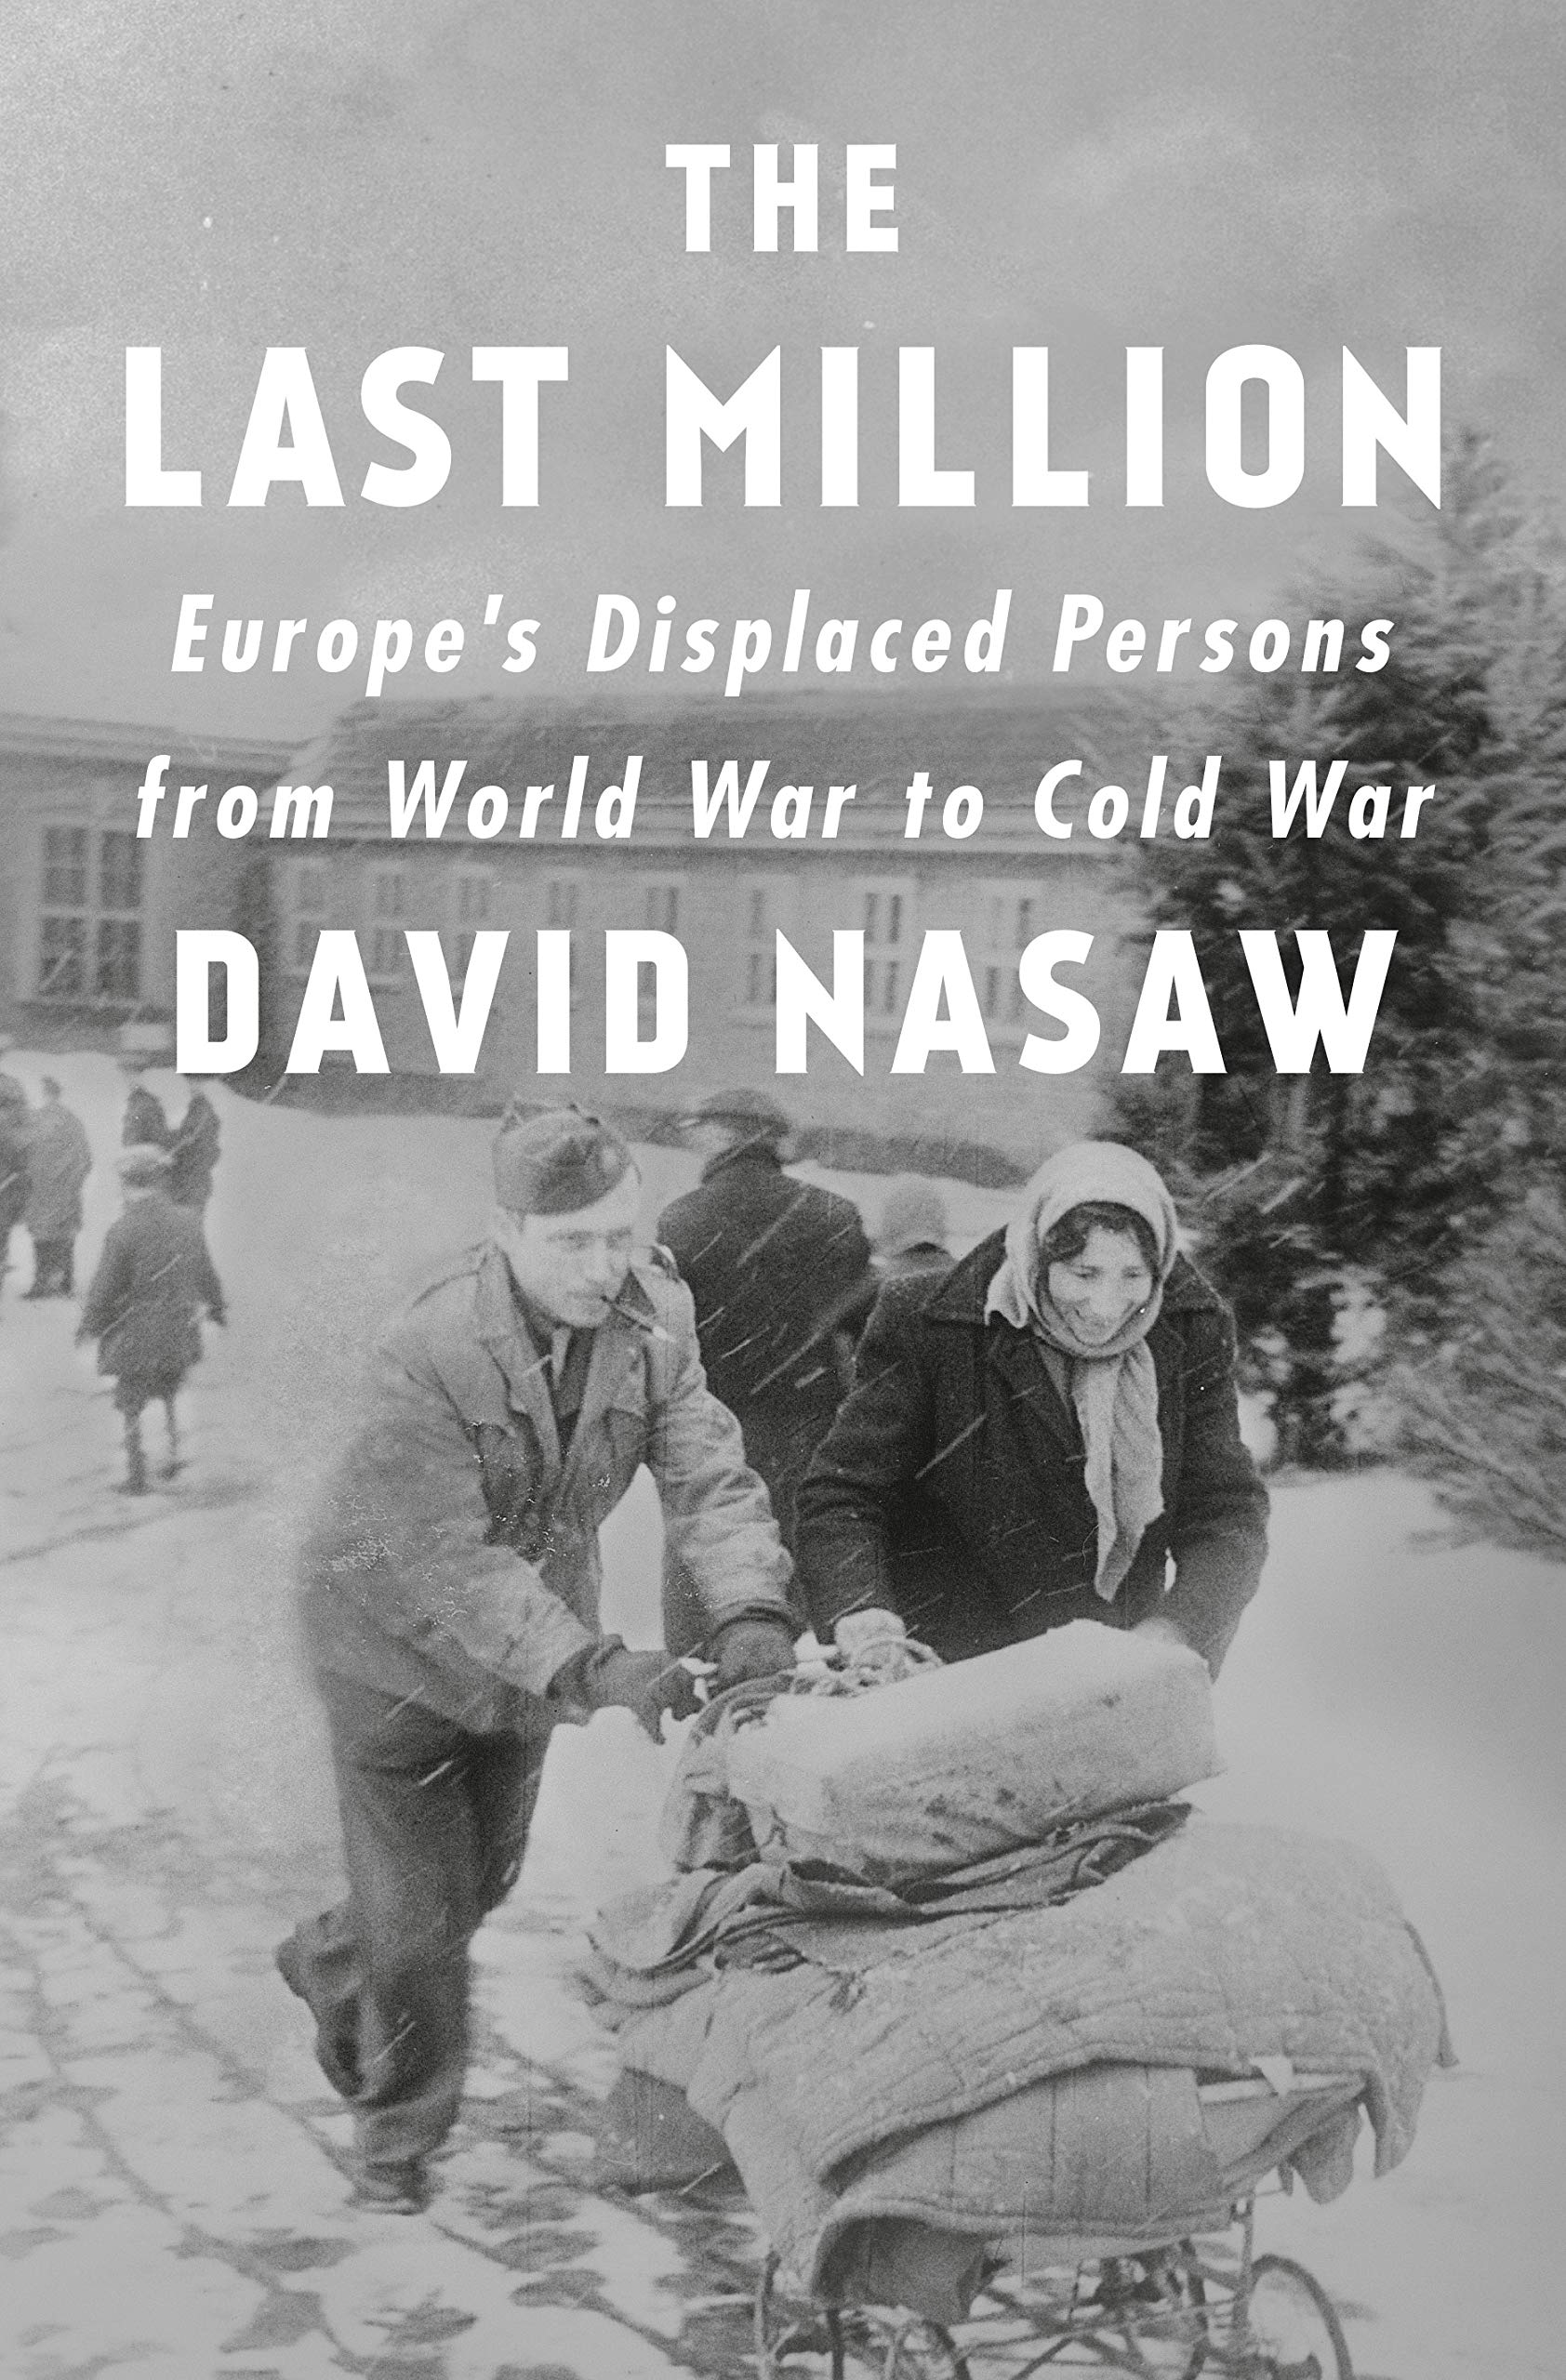 The Last Million: Europe's Displaced Persons from World War to Cold War